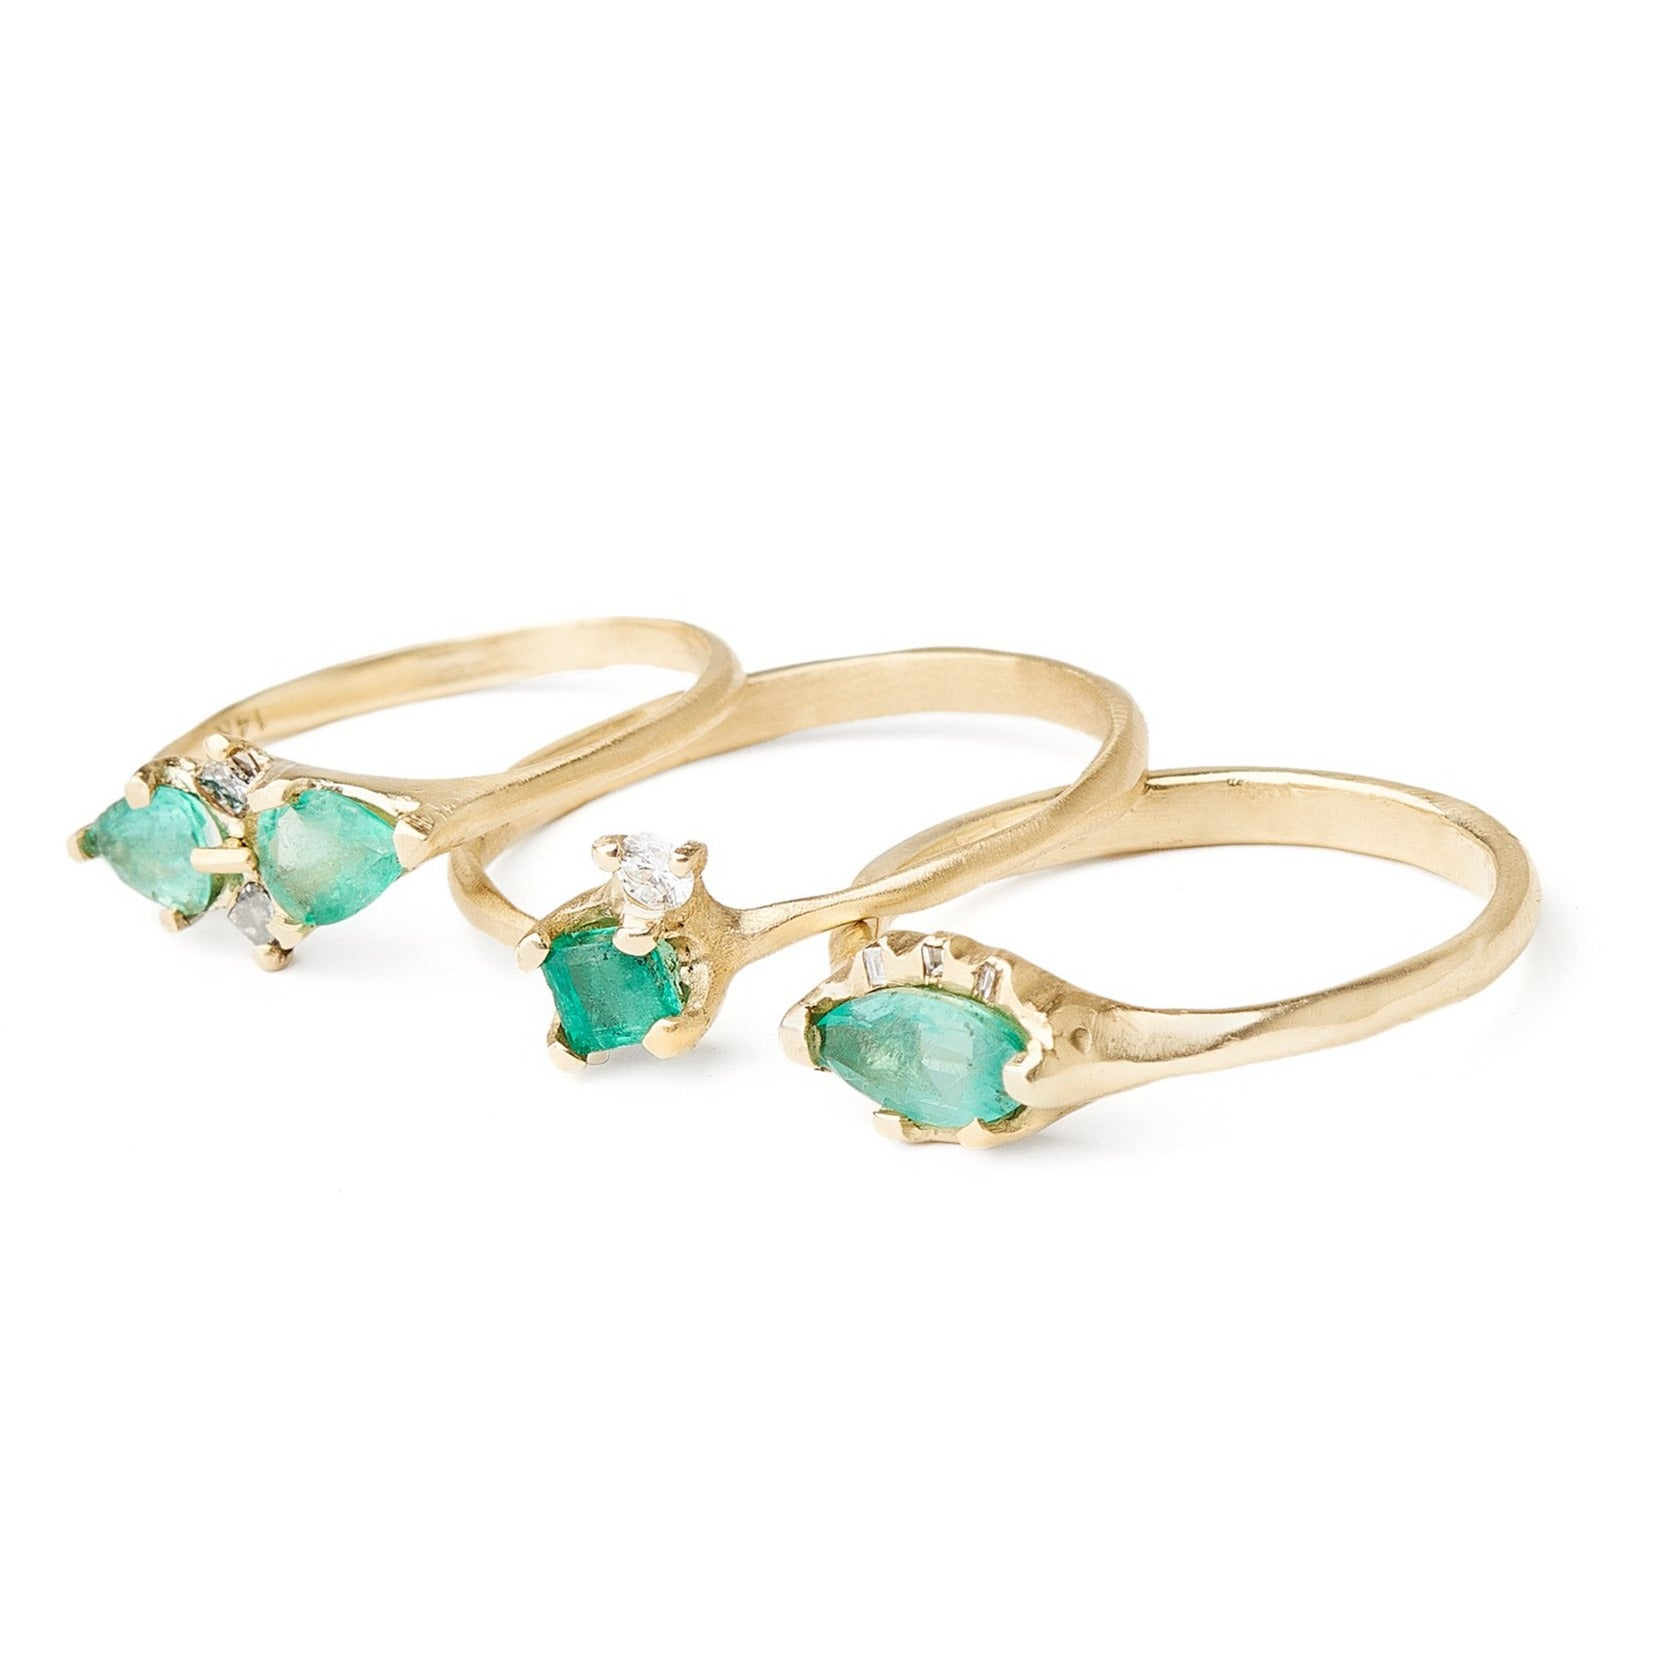 unique emerald rings with diamonds set in 14kt recycled yellow gold ethically sourced stones handmade with care.